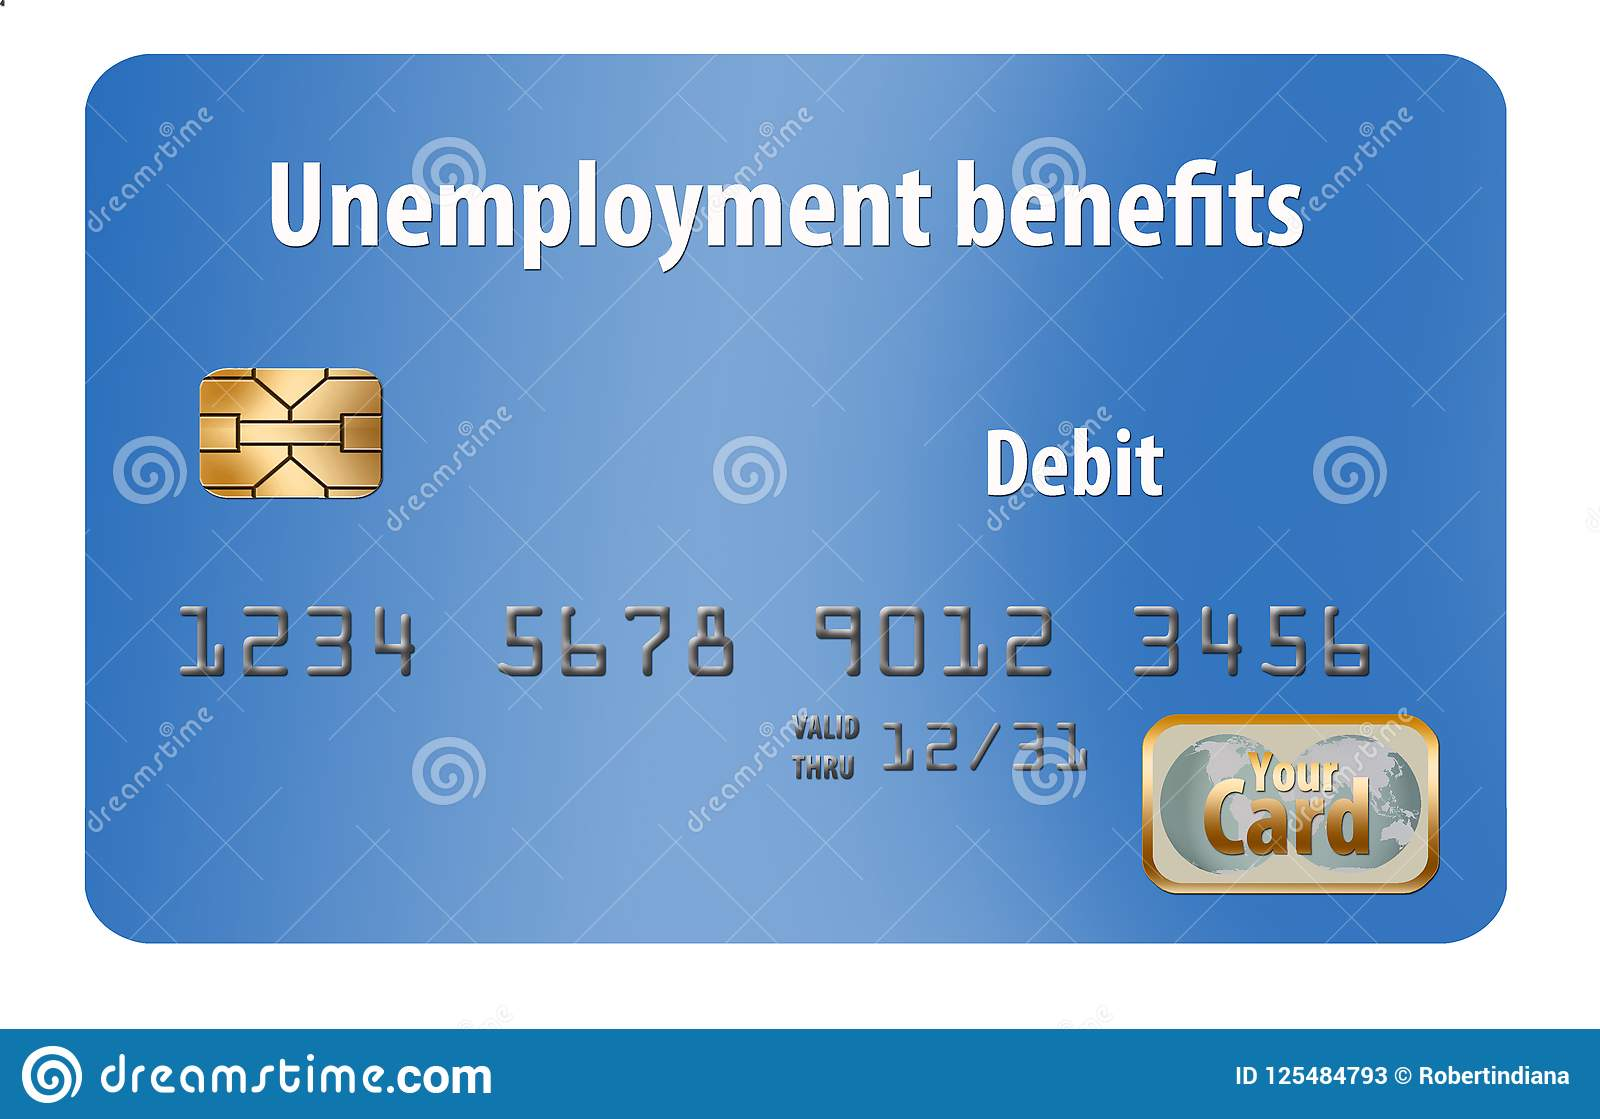 Here is a generic unemployment benefits debit card.